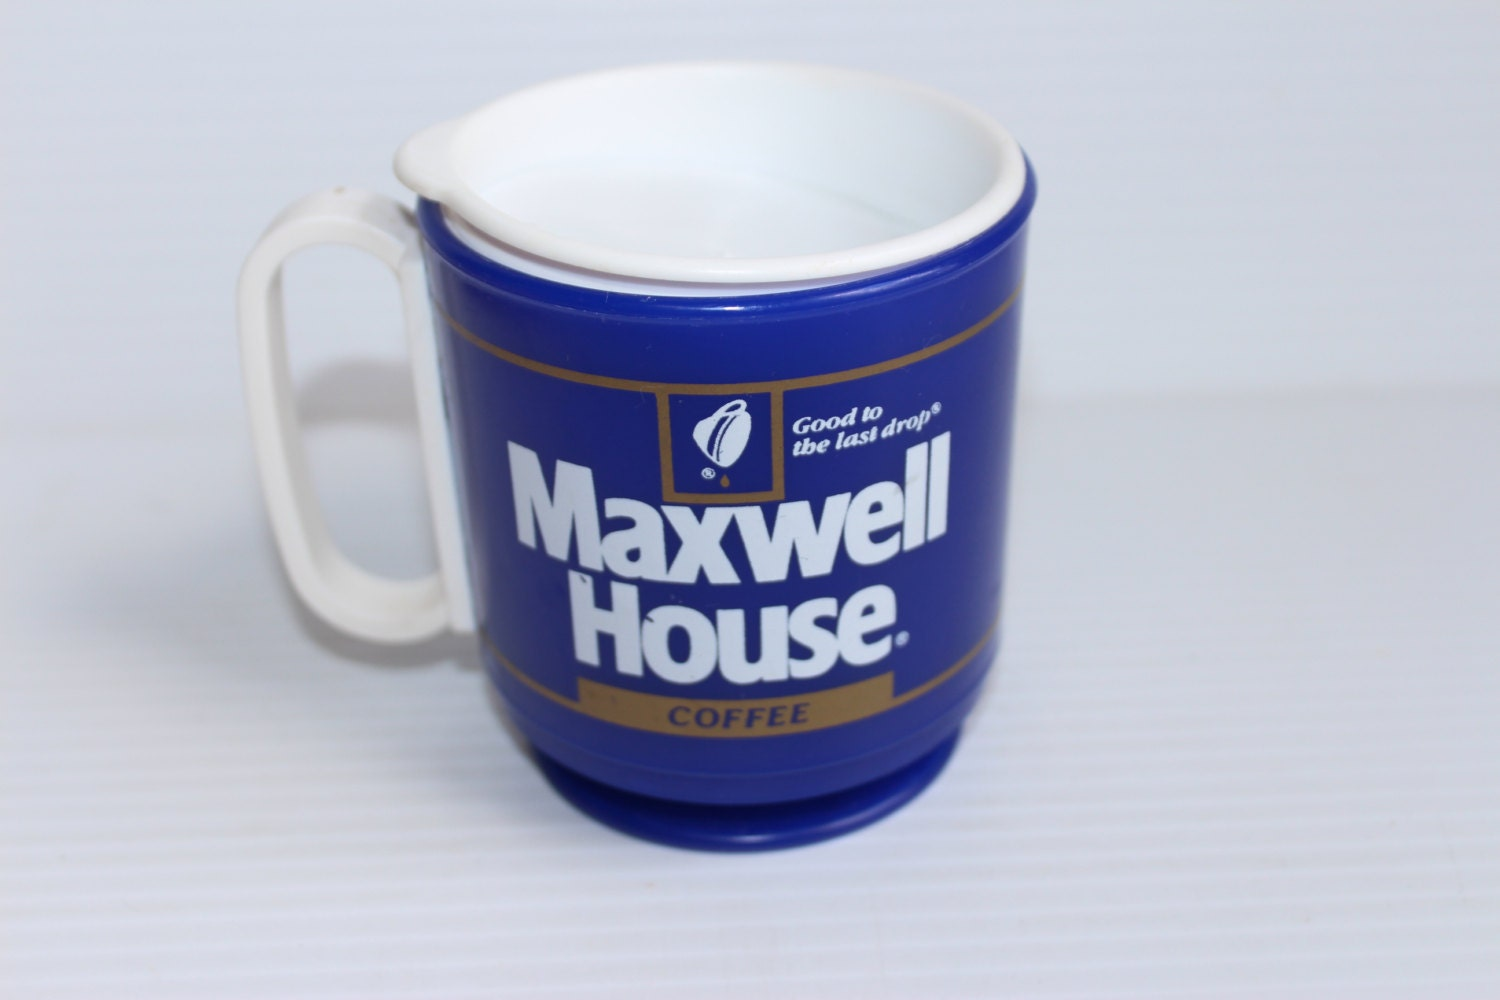 Maxwell House Coffee Travel Mug Vintage 1980s Plastic Coffee